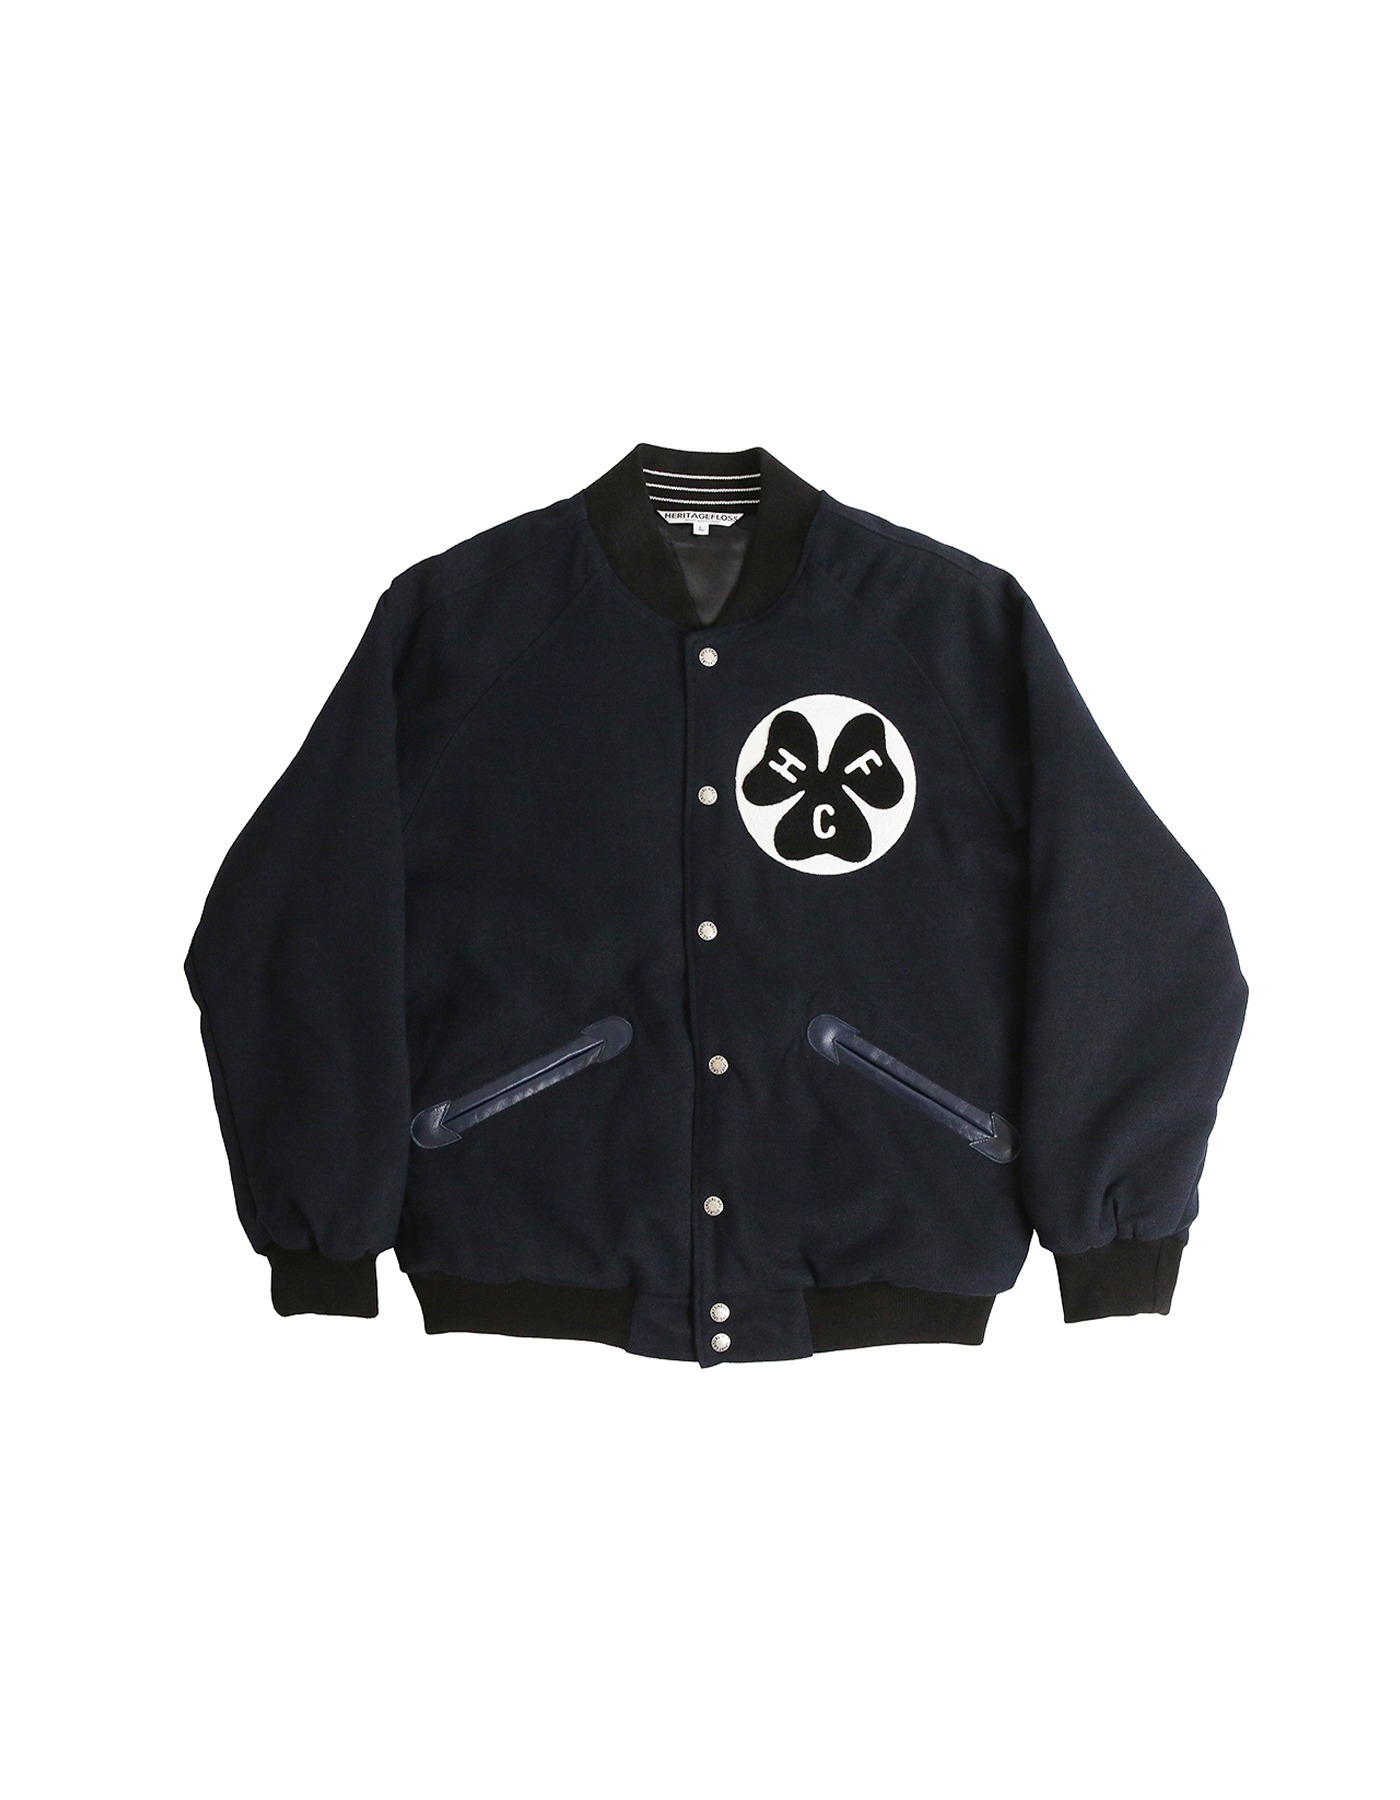 S&C FAUX WOOL VARSITY JACKET / NAVY